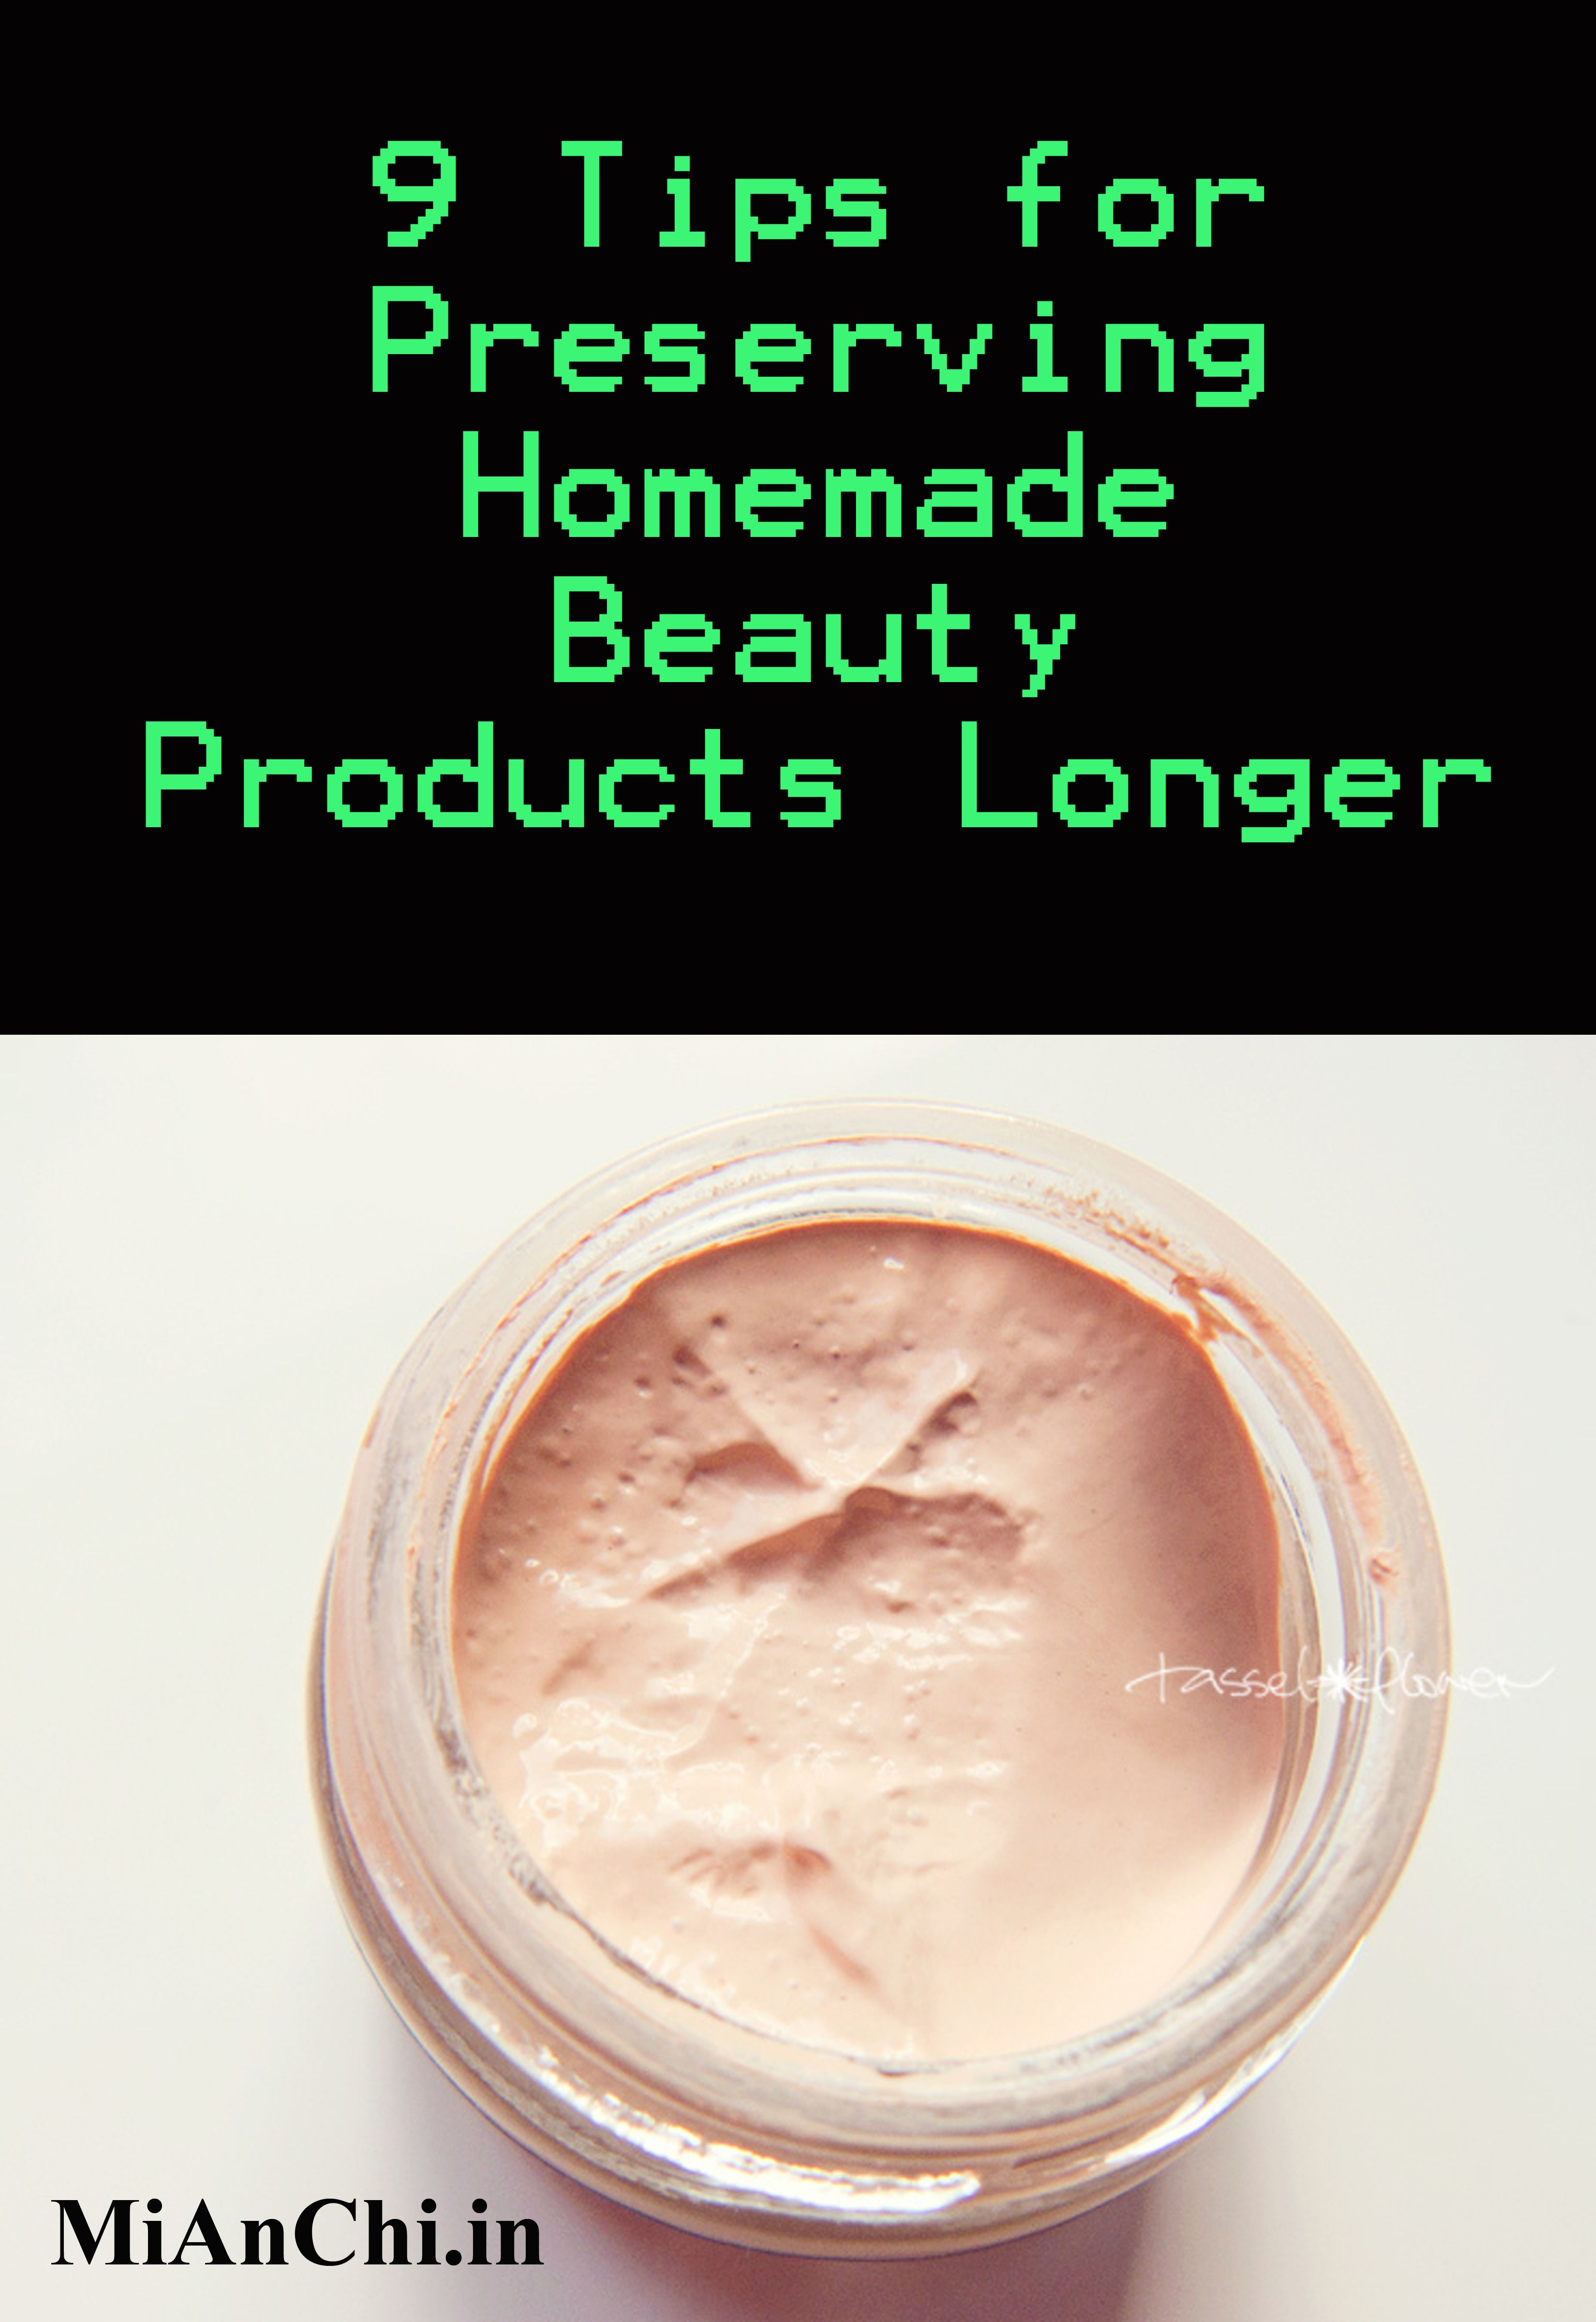 9 Tips for Preserving Homemade Beauty Products Longer http://mianchi.in/?p=200